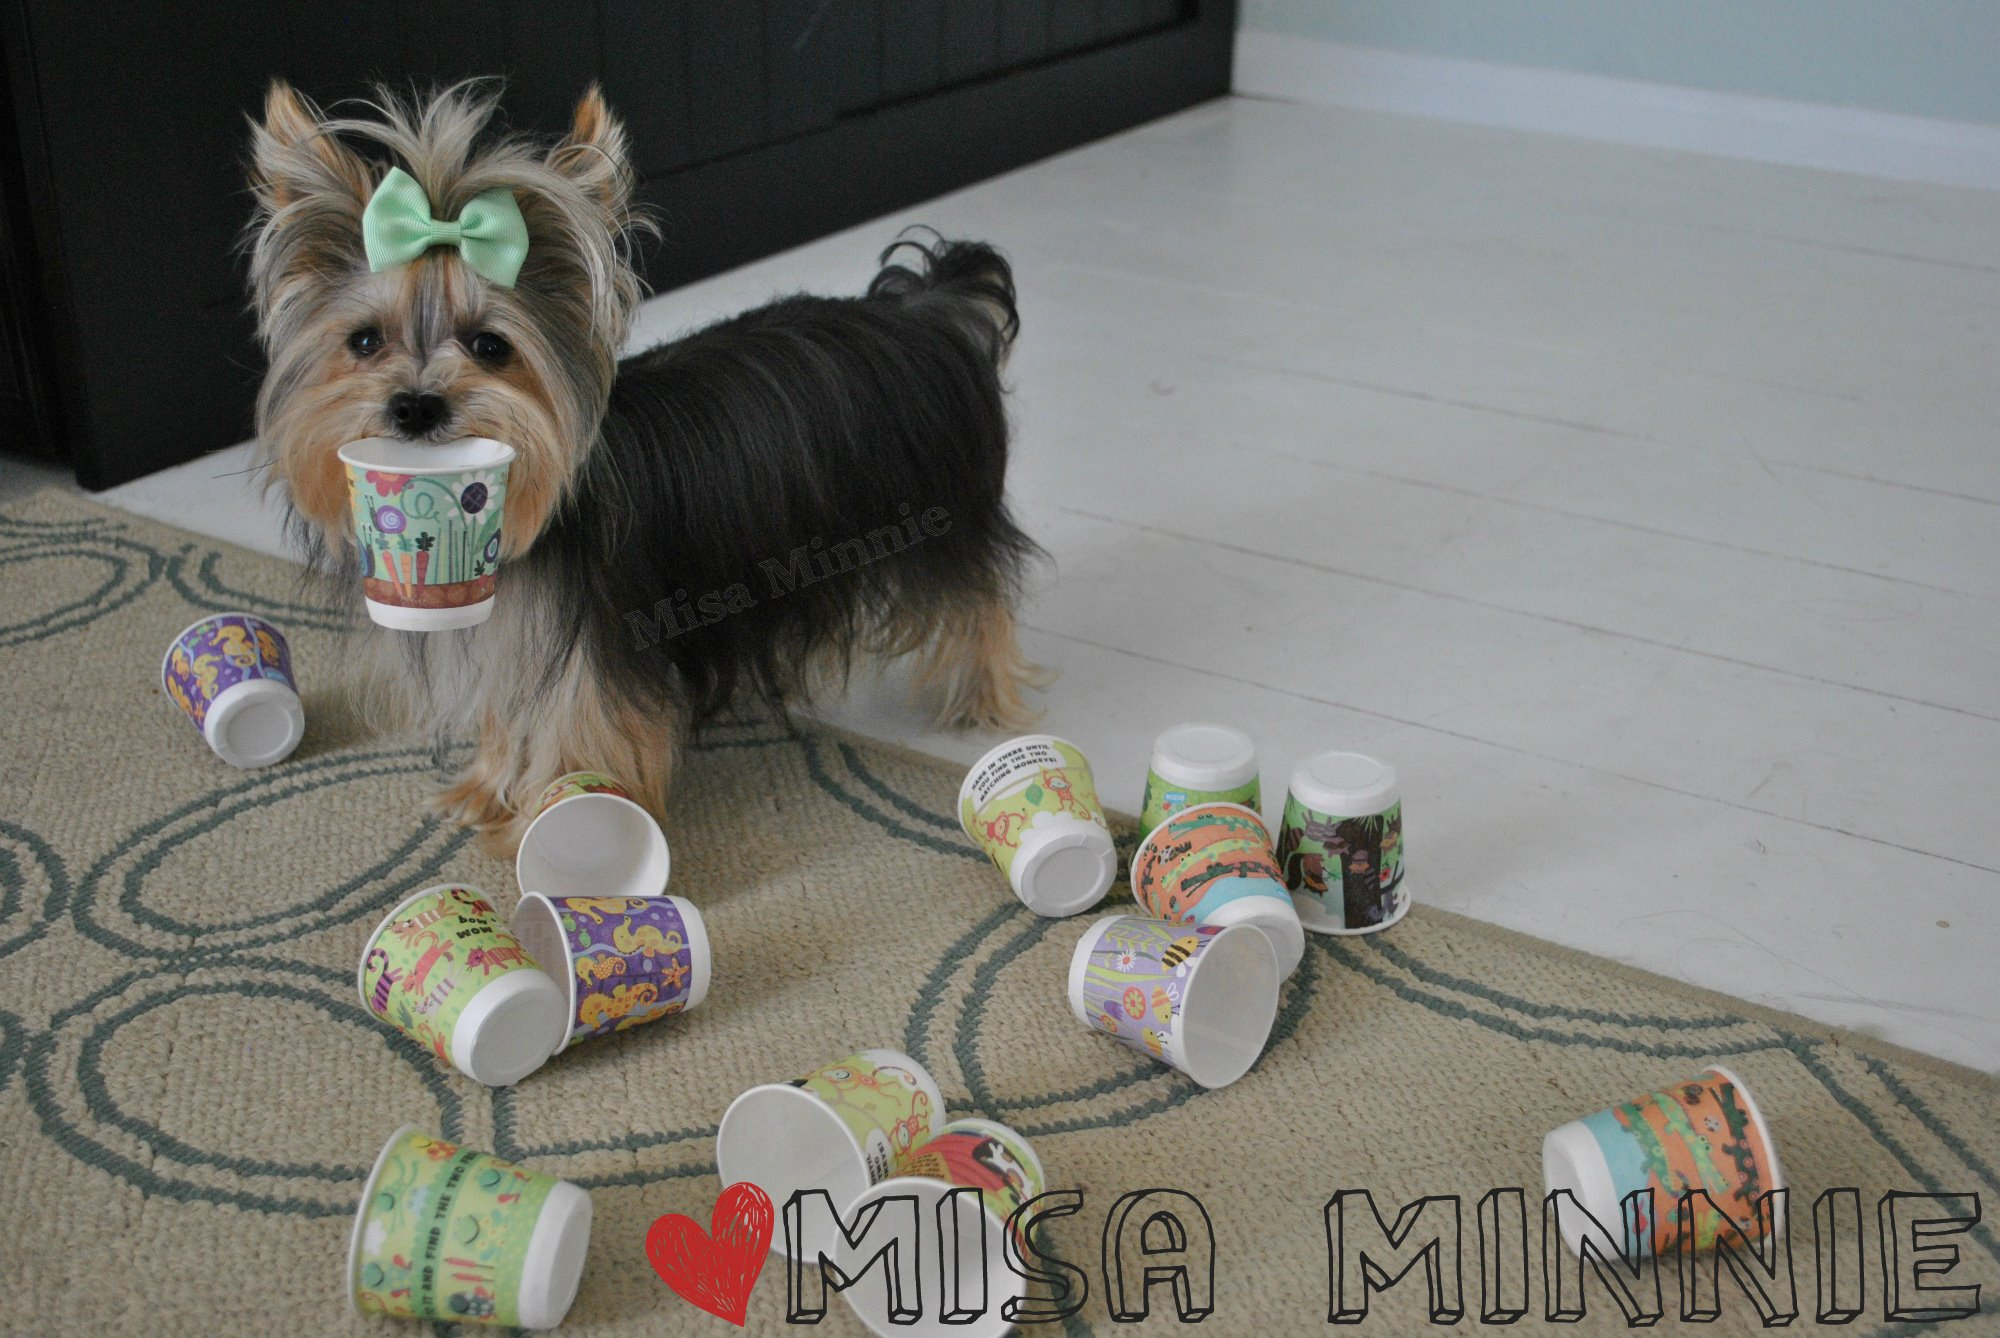 Tiny Bespectacled Yorkie Performs an Amazing Multitude of Wonderful Tricks